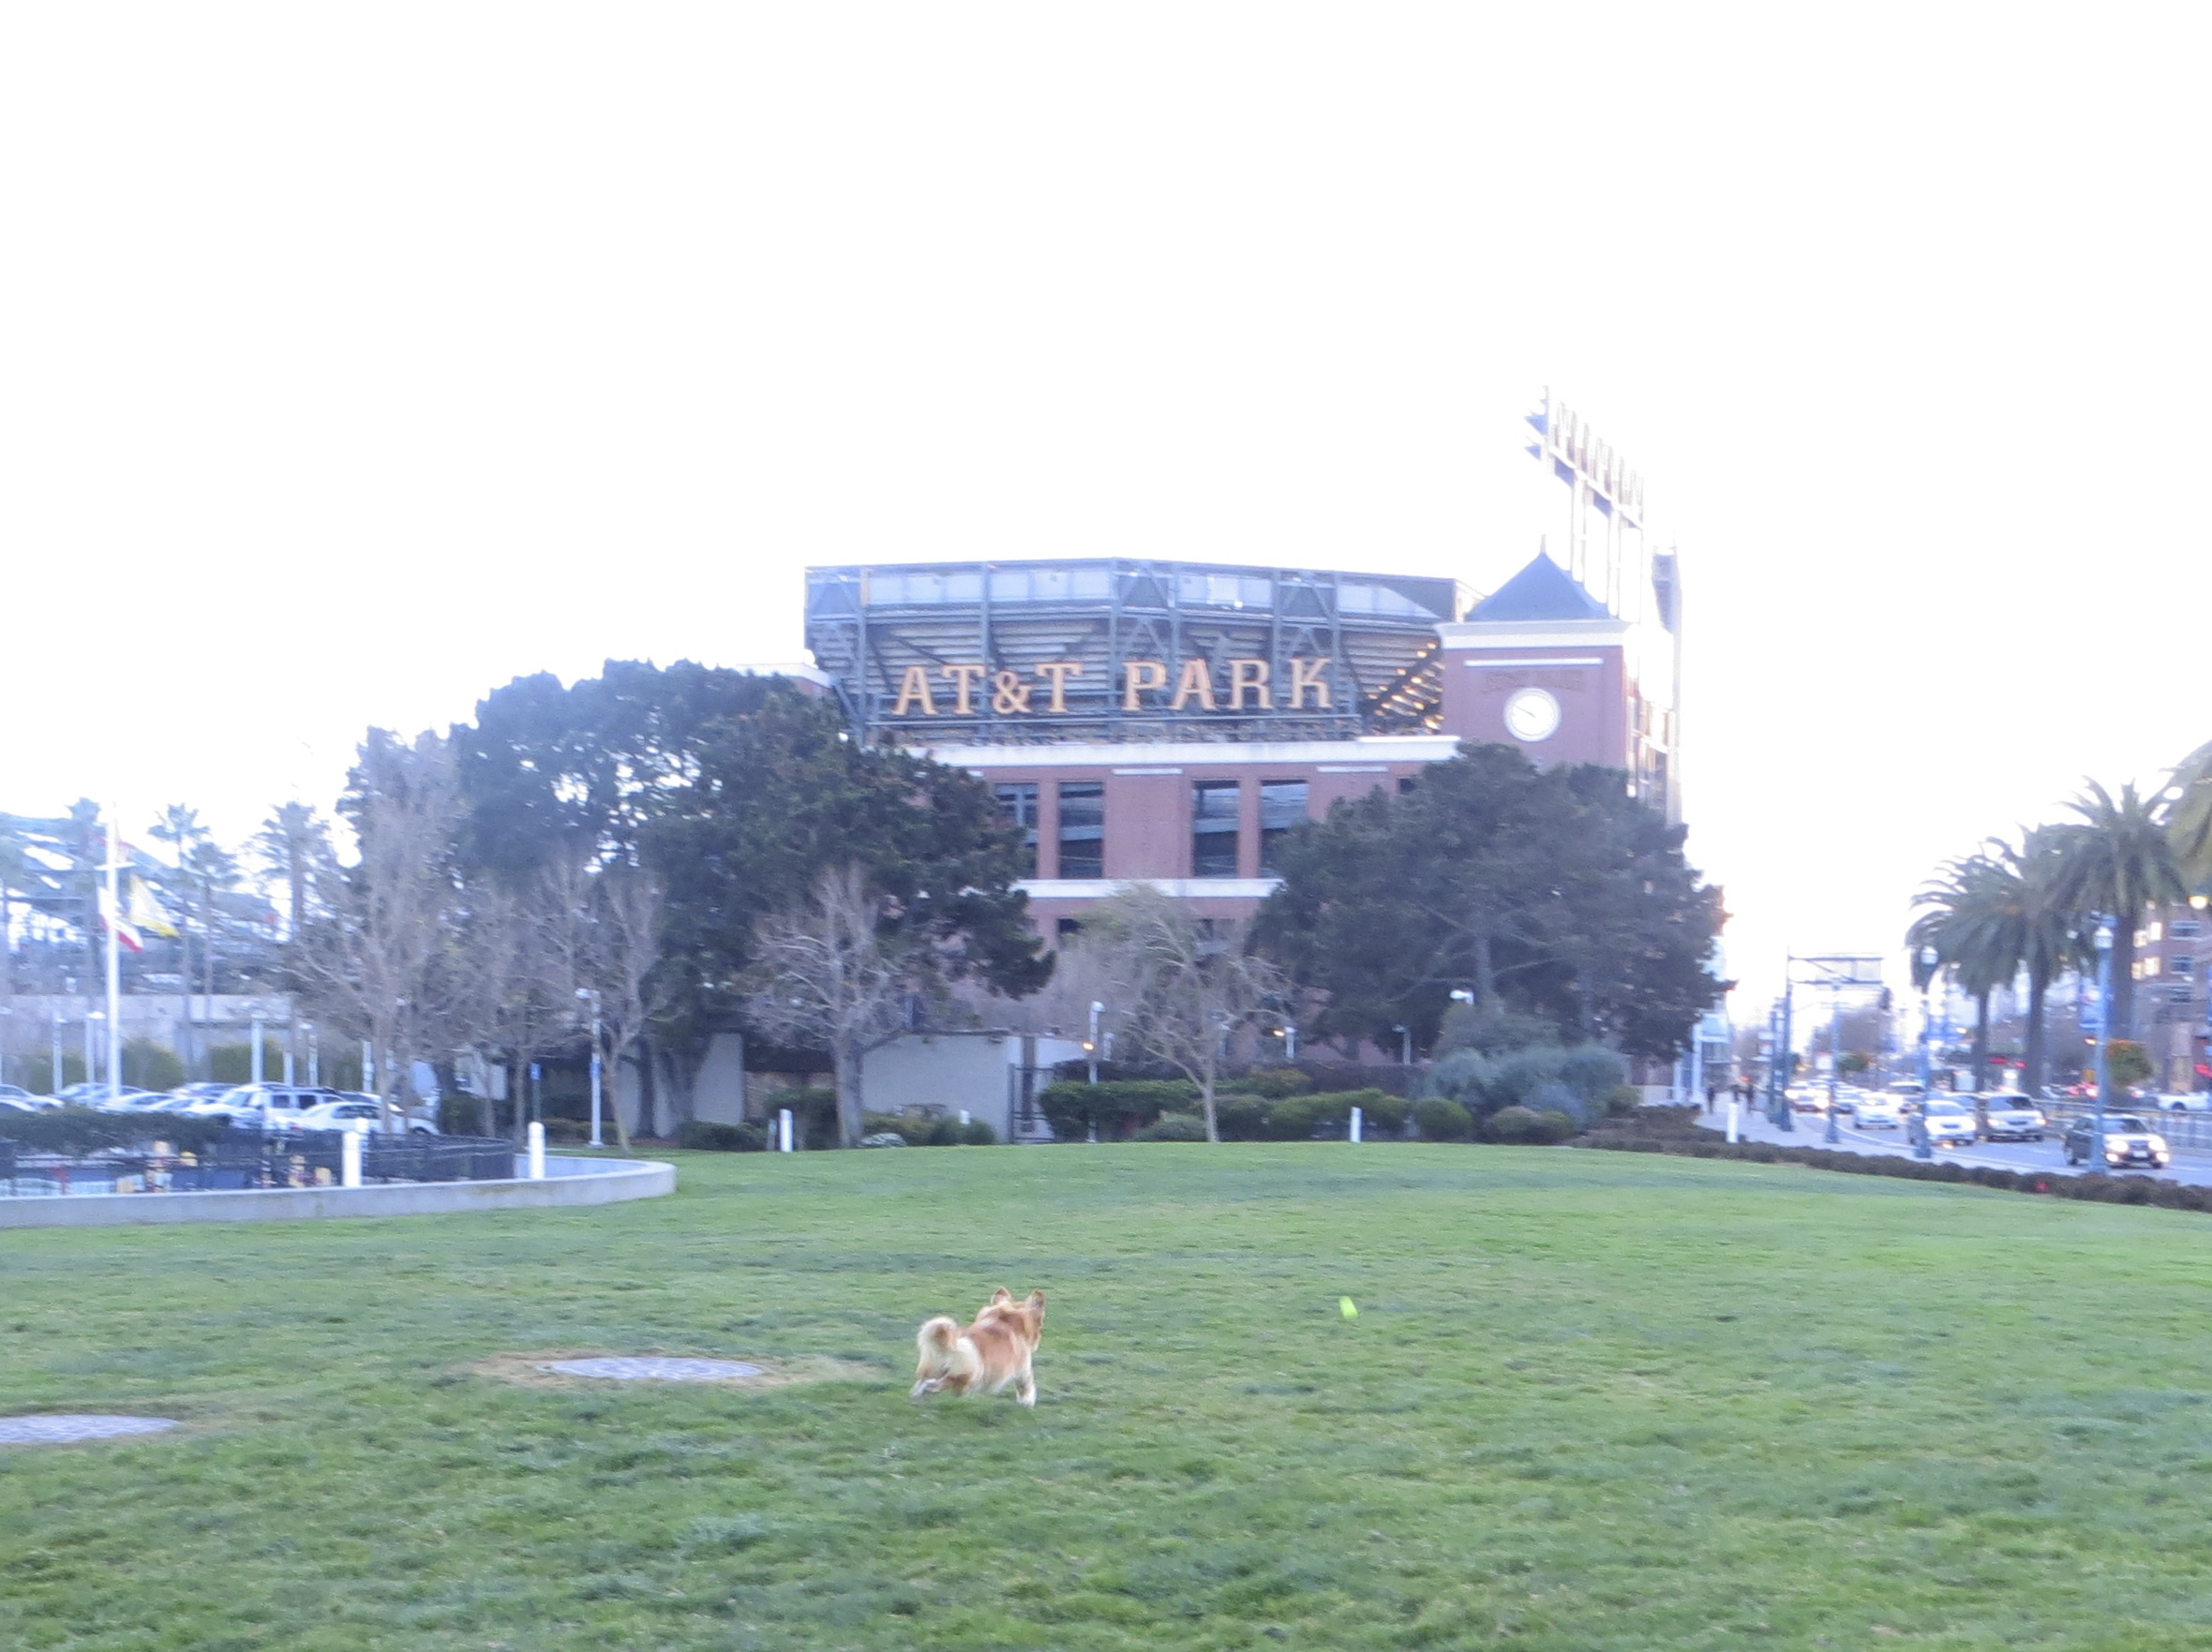 Golden Retriever/Corgi Mix Fetching a Ball in Front of AT&T Park/Giants' Stadium